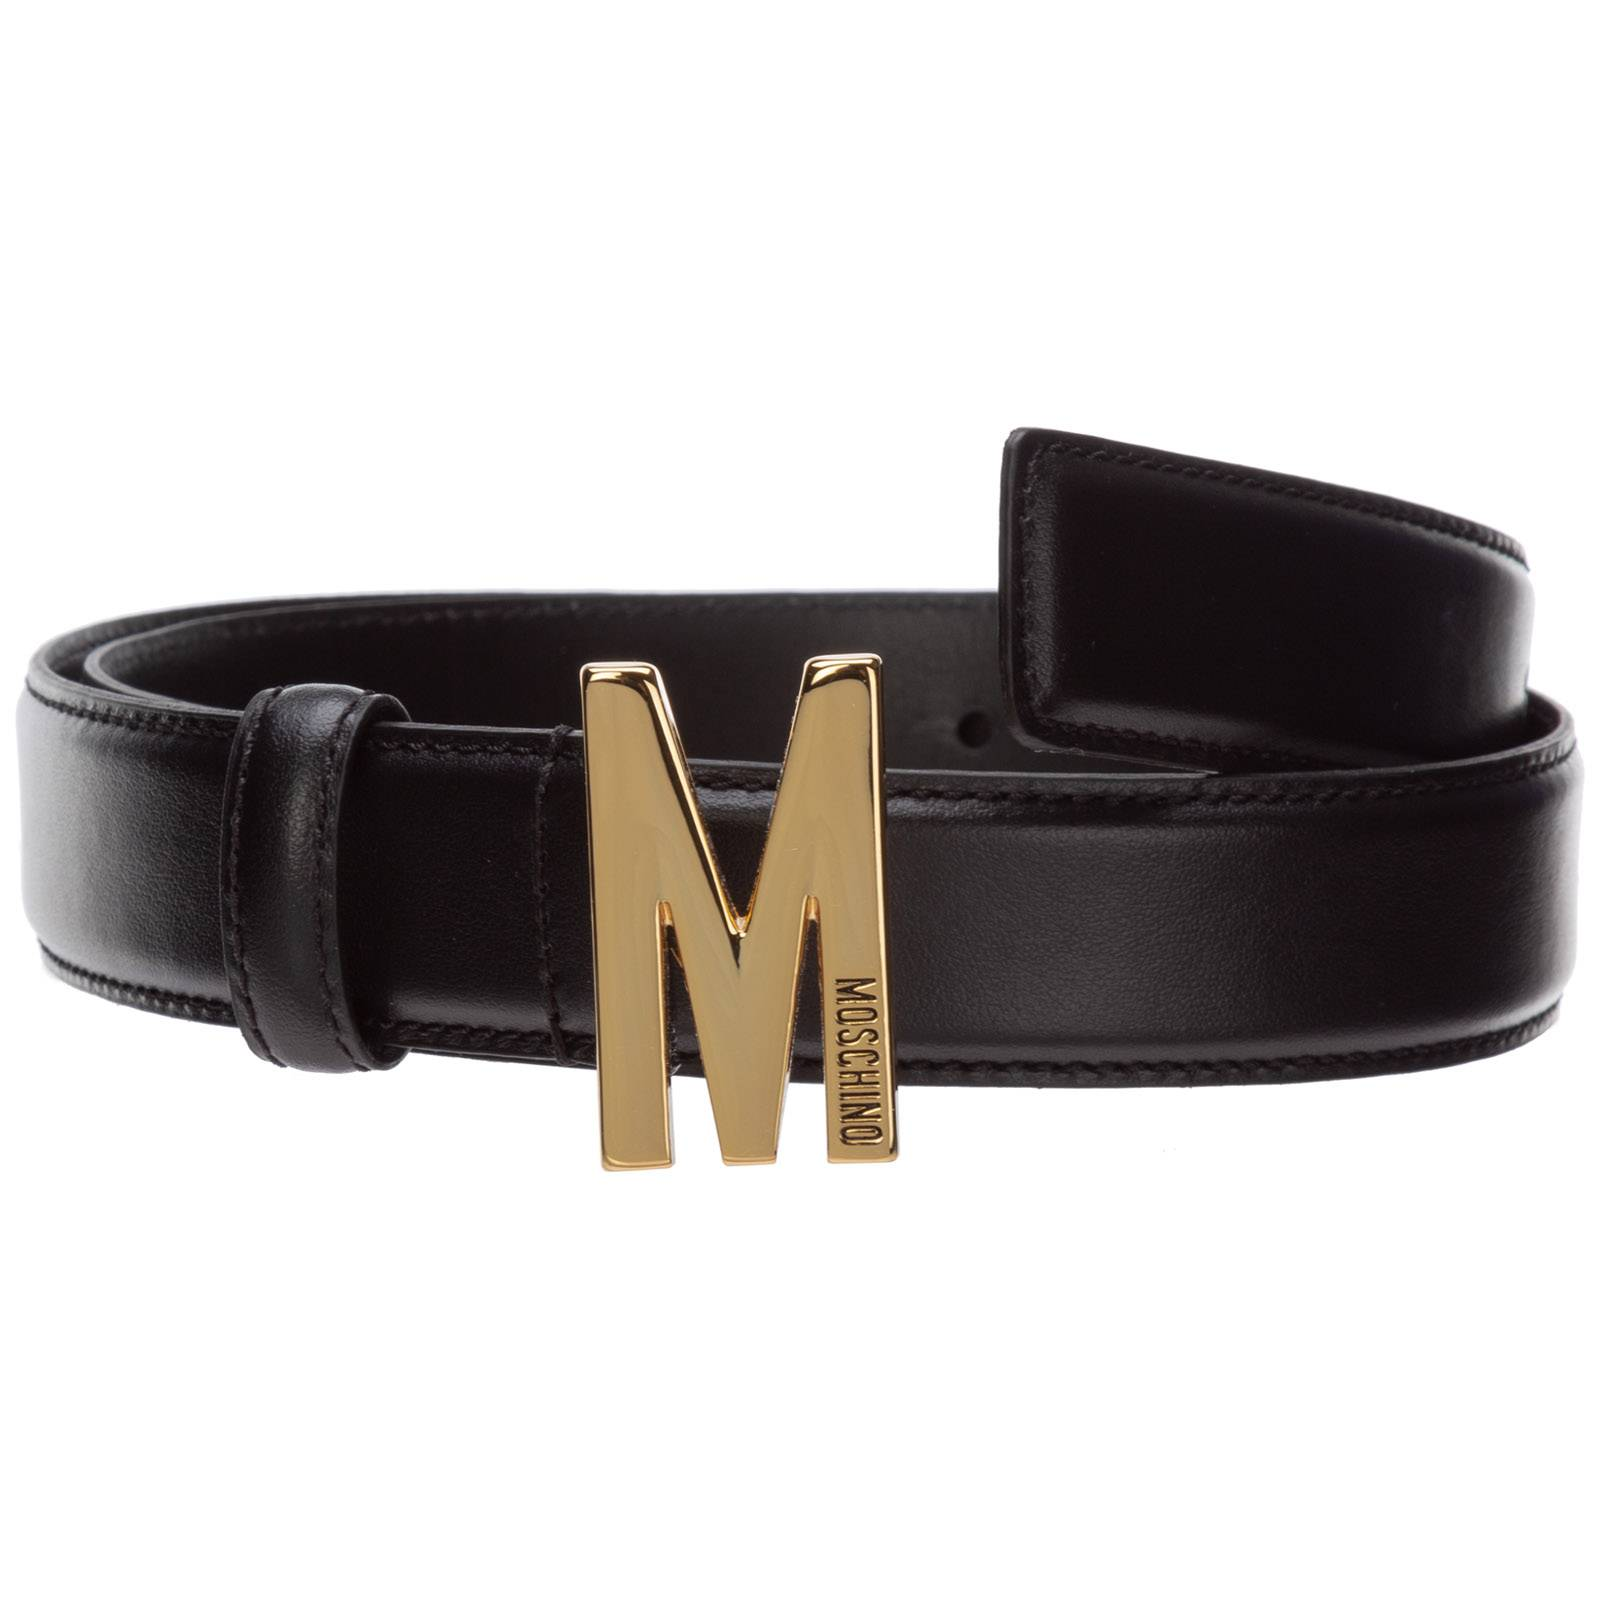 Moschino Women's genuine leather belt m  - Black - Size: 44